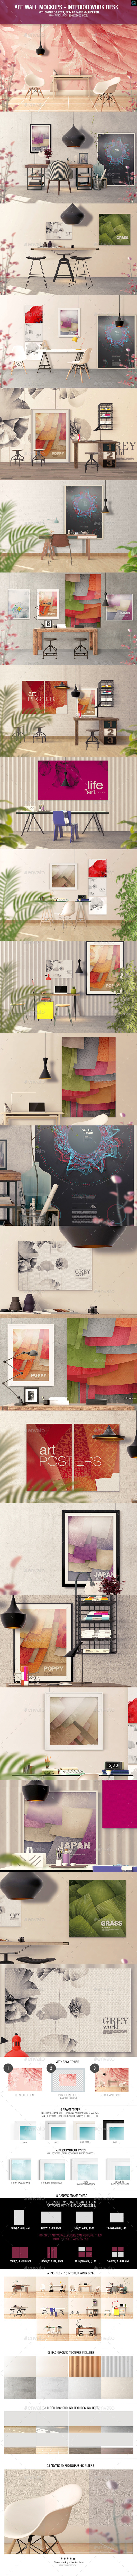 Art Wall Mockups - Interior Work Desk - Hero Images Graphics